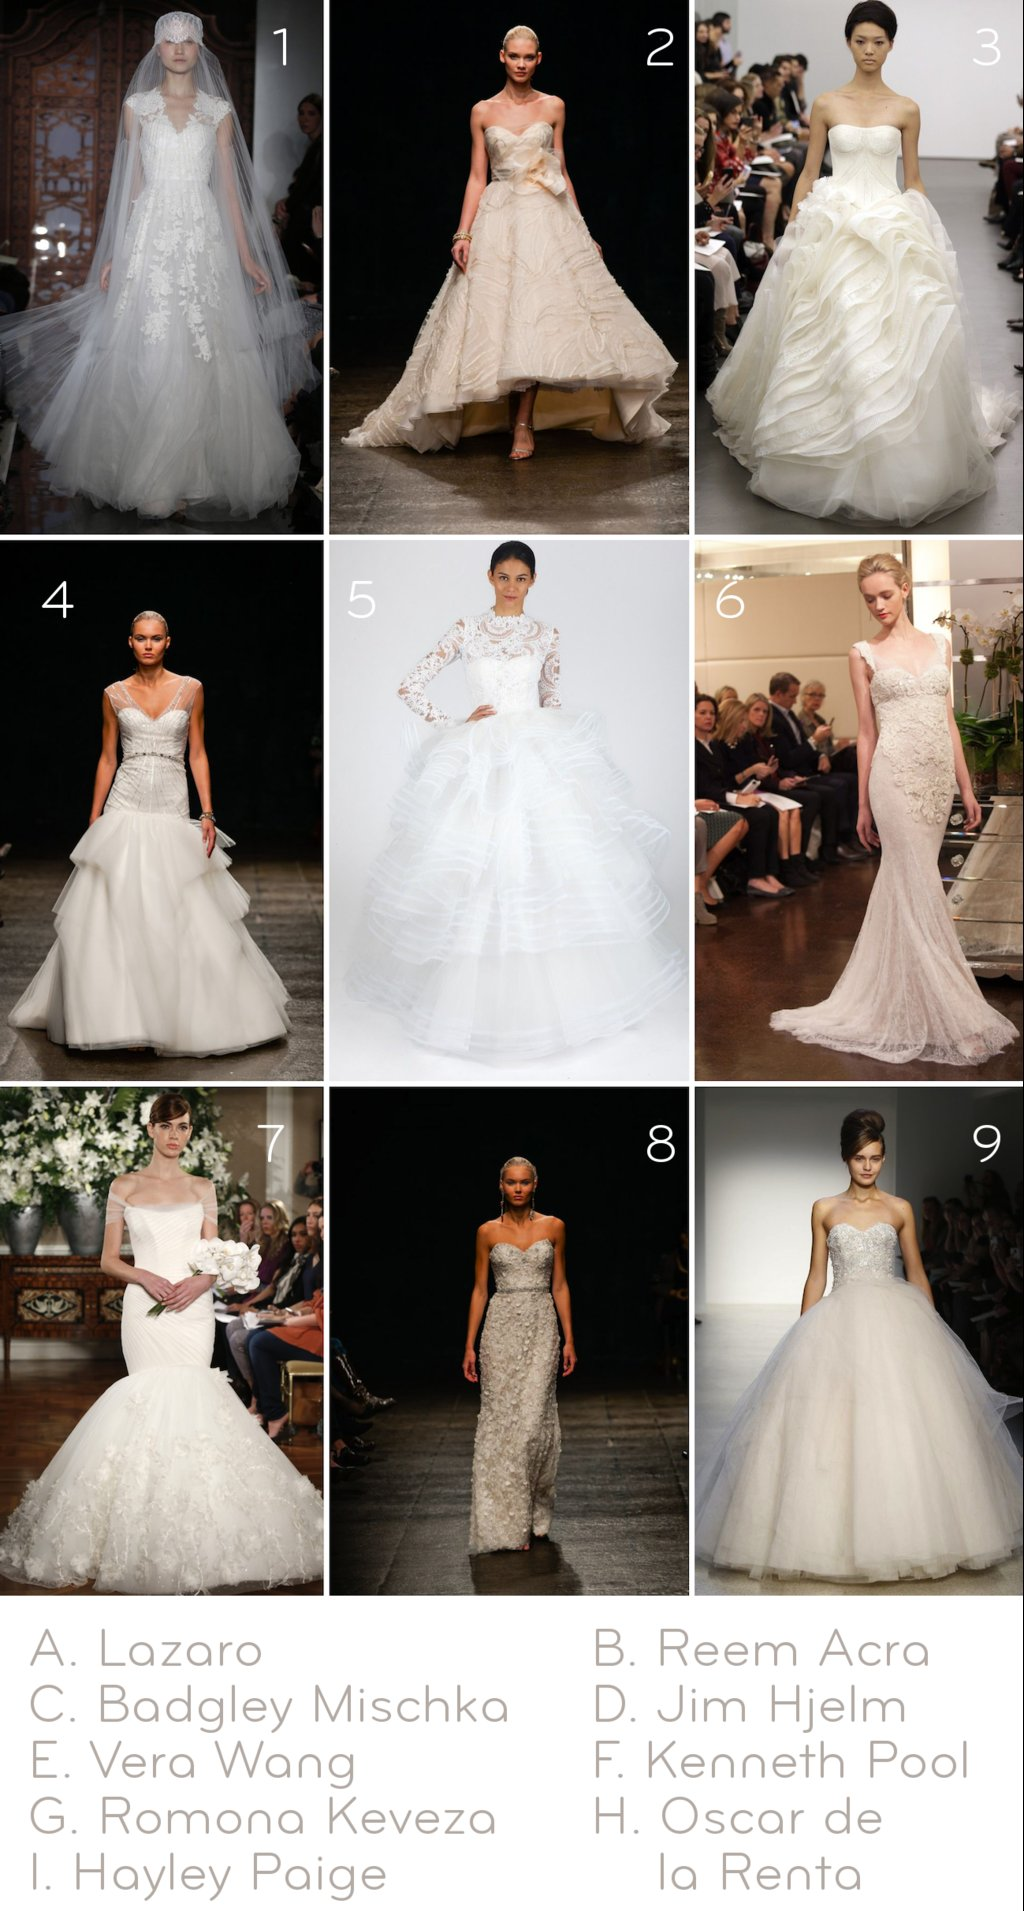 Guess-the-wedding-dress-designer-to-win-something-bridal-fab-2.full